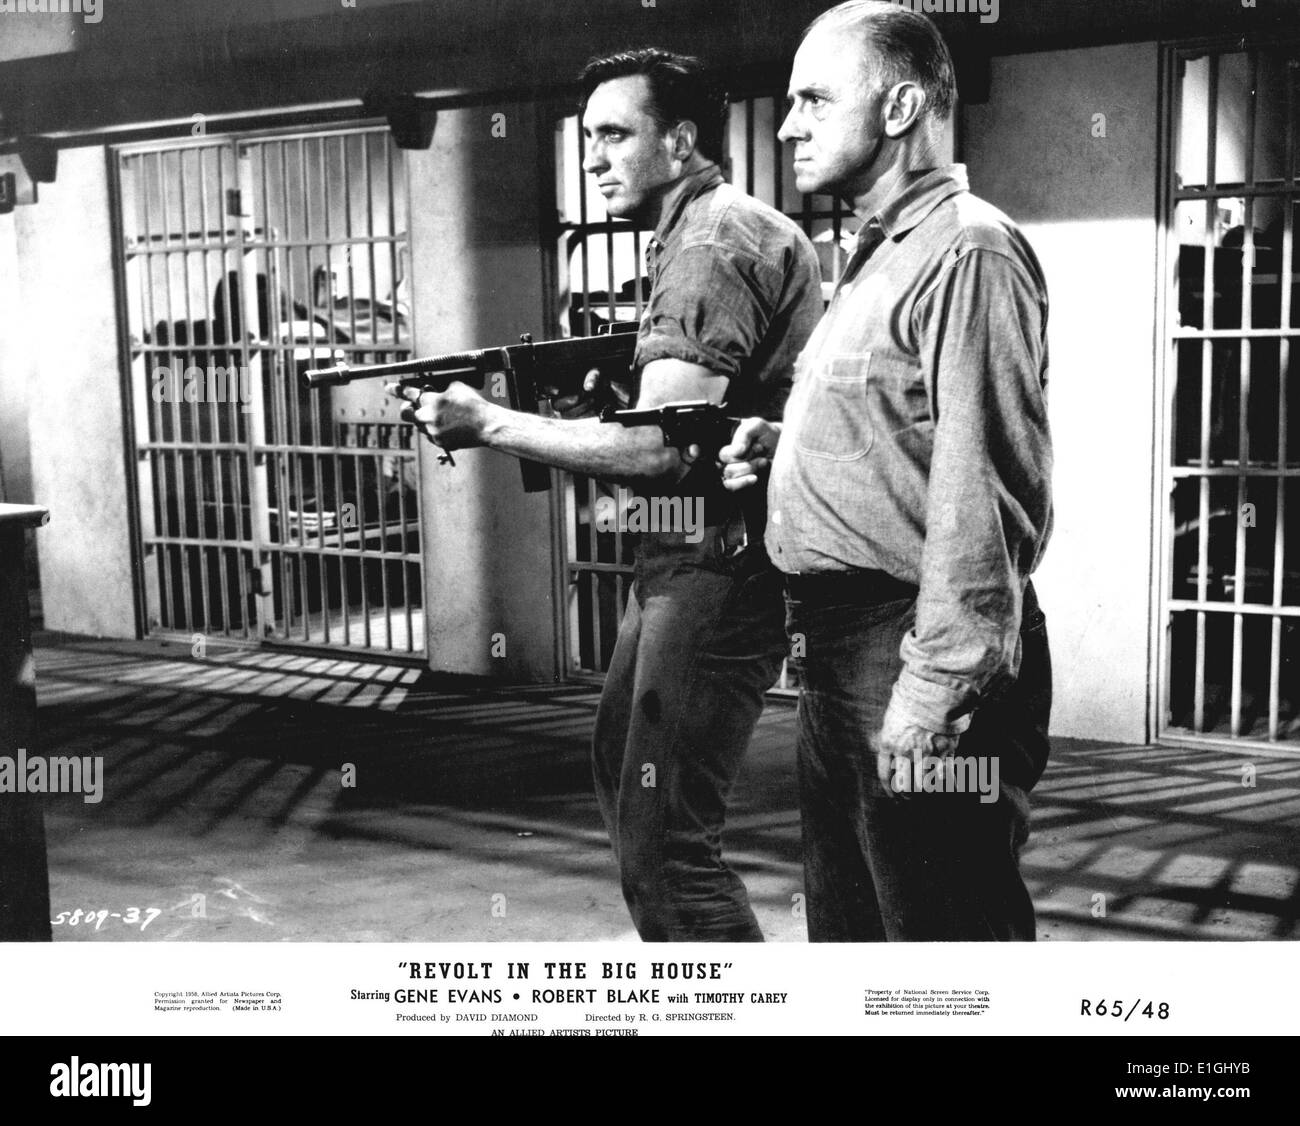 'Revolt in the Big House' a film starring Gene Evans and Robert Blake. Gannon is an imprisoned racketeer kingpin who tries to - Stock Image